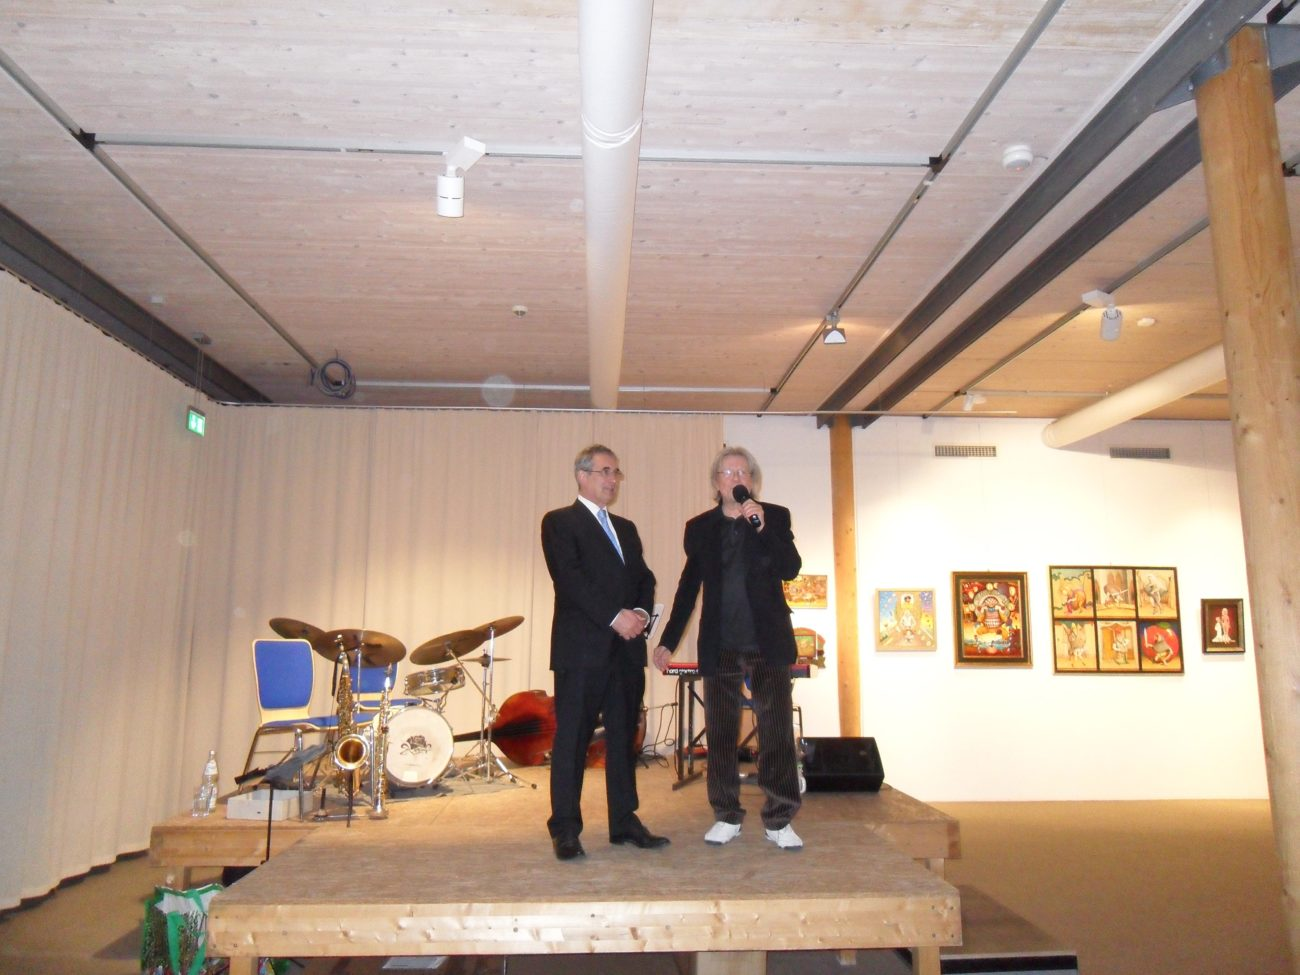 Magical Dreams III - 2. Vernissage im Deutschen Hopfenmuseum